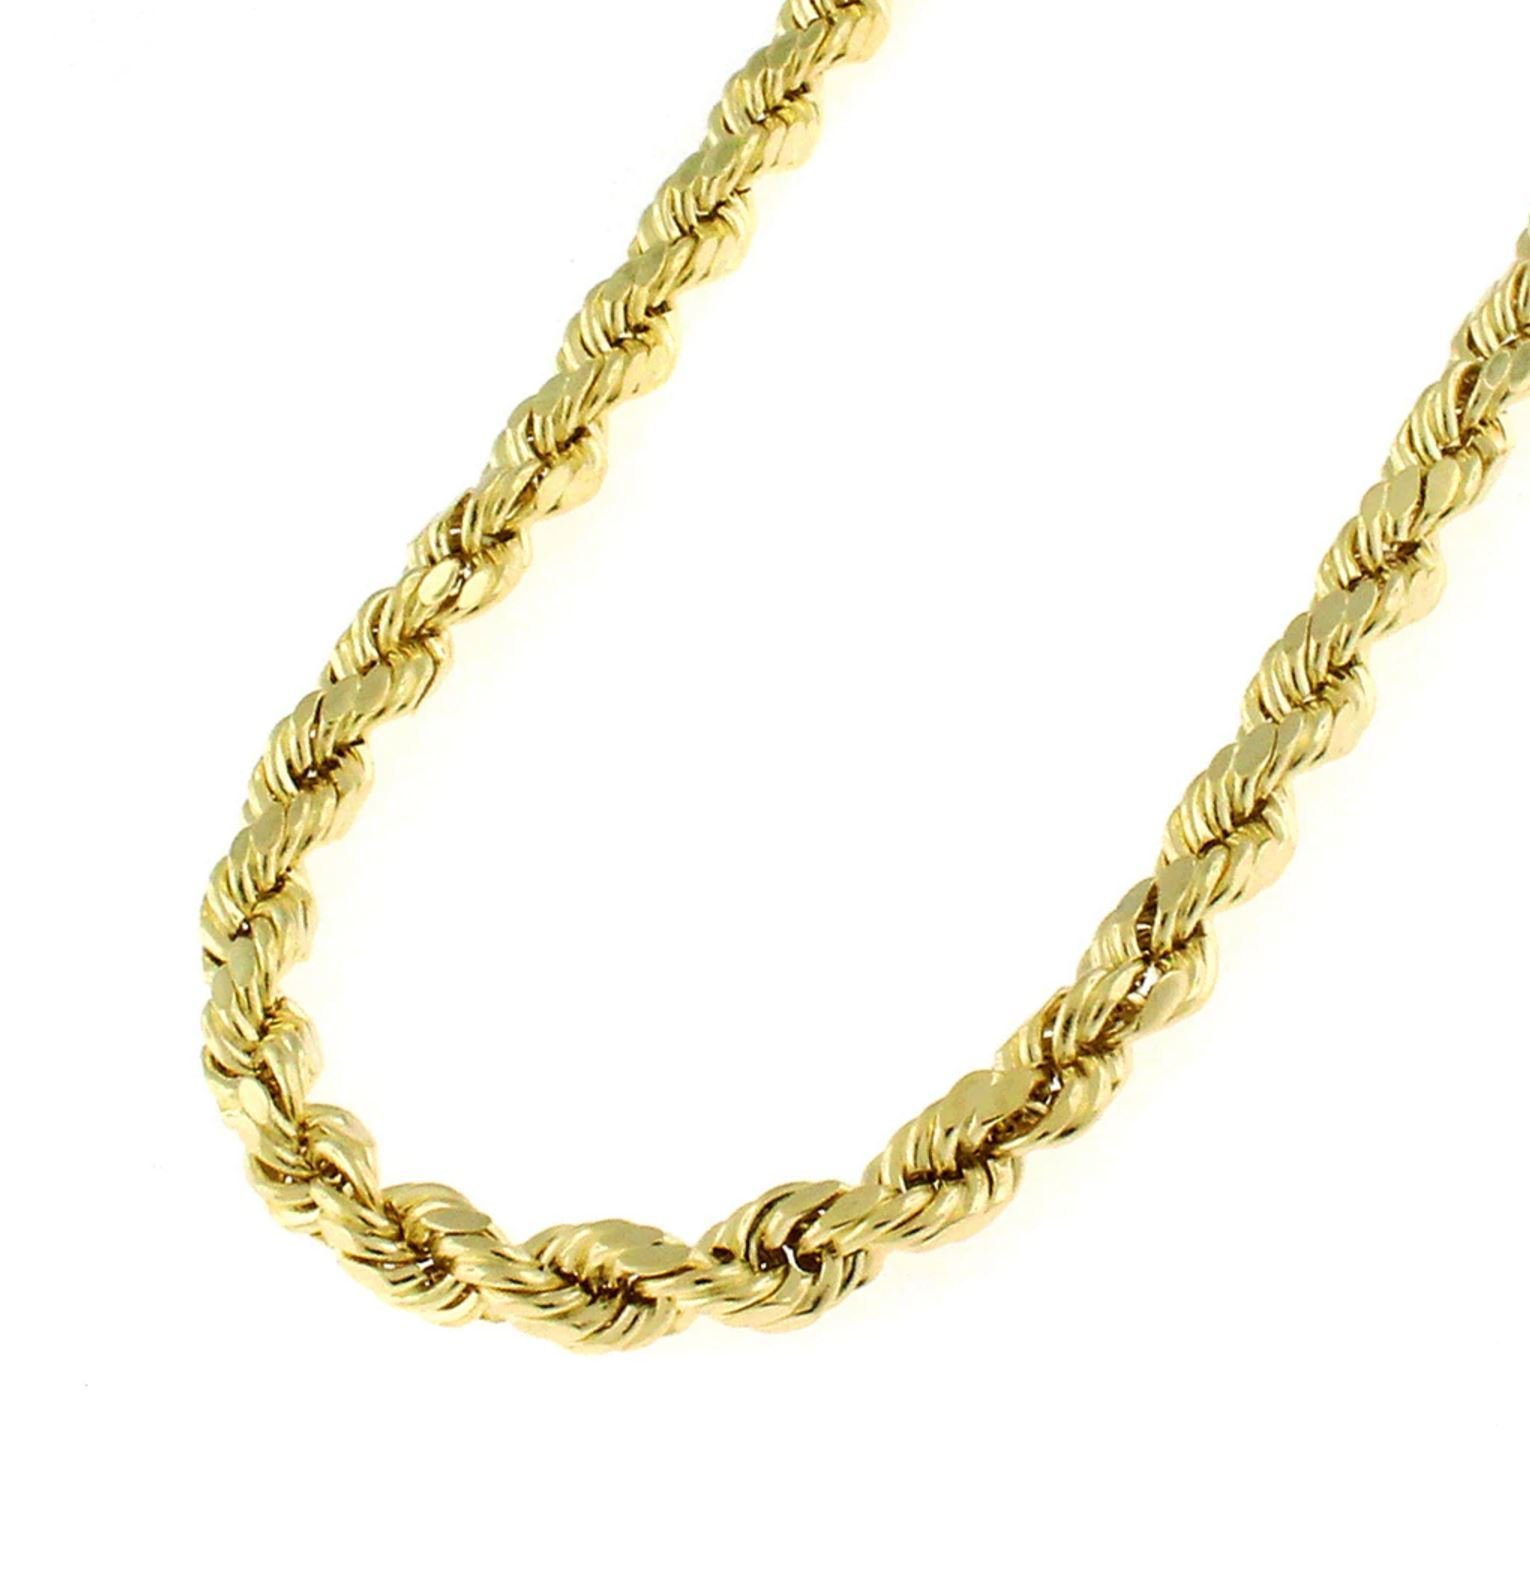 14K Solid Yellow Gold 1.5mm, 2mm, or 3.2mm Diamond Cut Rope Chain Necklace Unisex Sizes 16''-30'' -Solid Gold Heavyweight (24, 3.2mm)